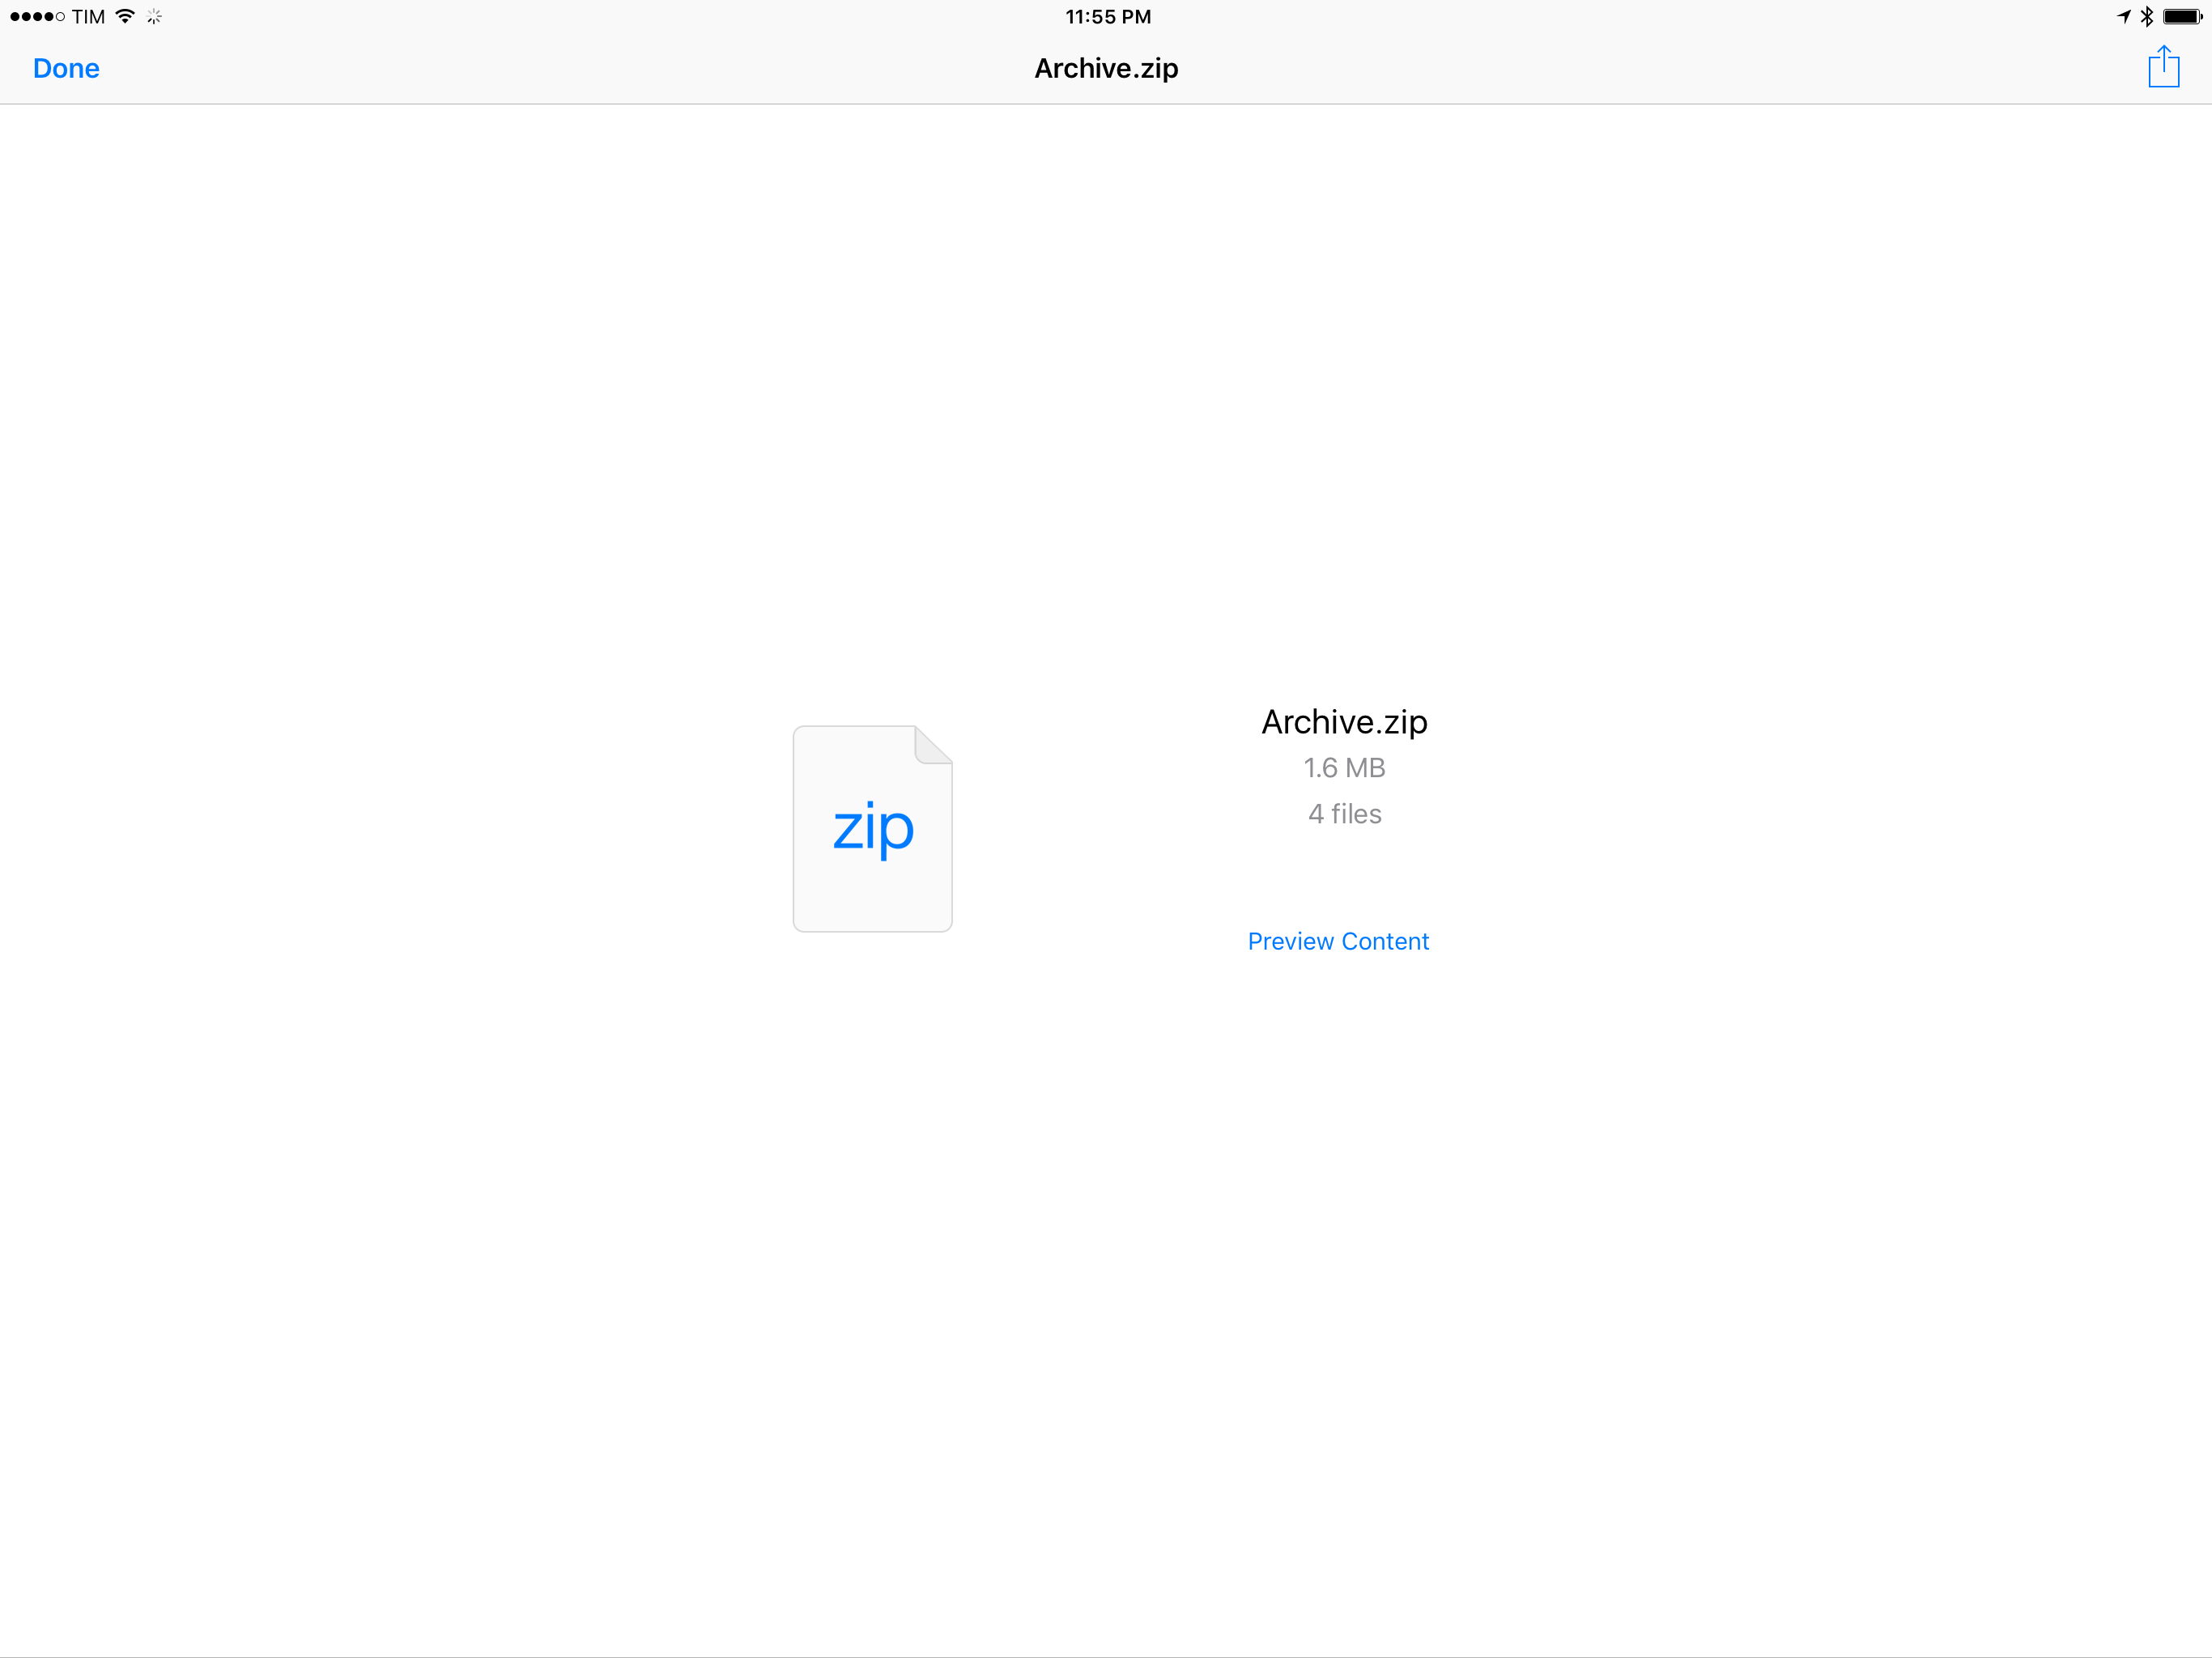 iPad Diaries: Working with Zip Archives - MacStories